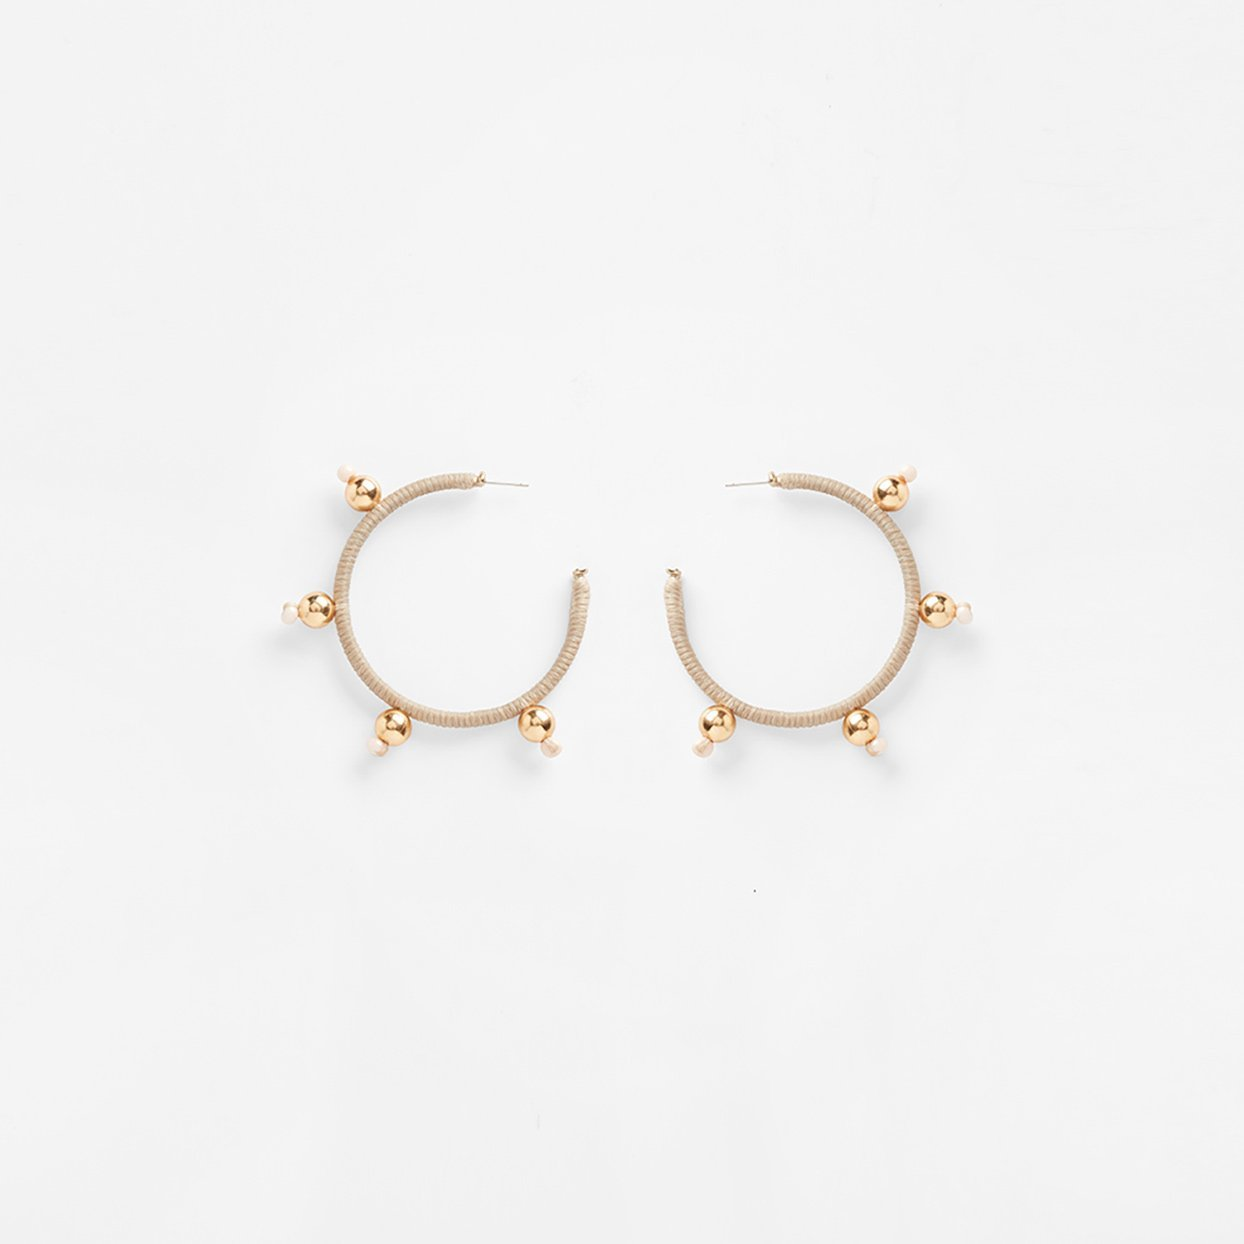 Ouroboros Earrings Pichulik Earrings - White Label Project